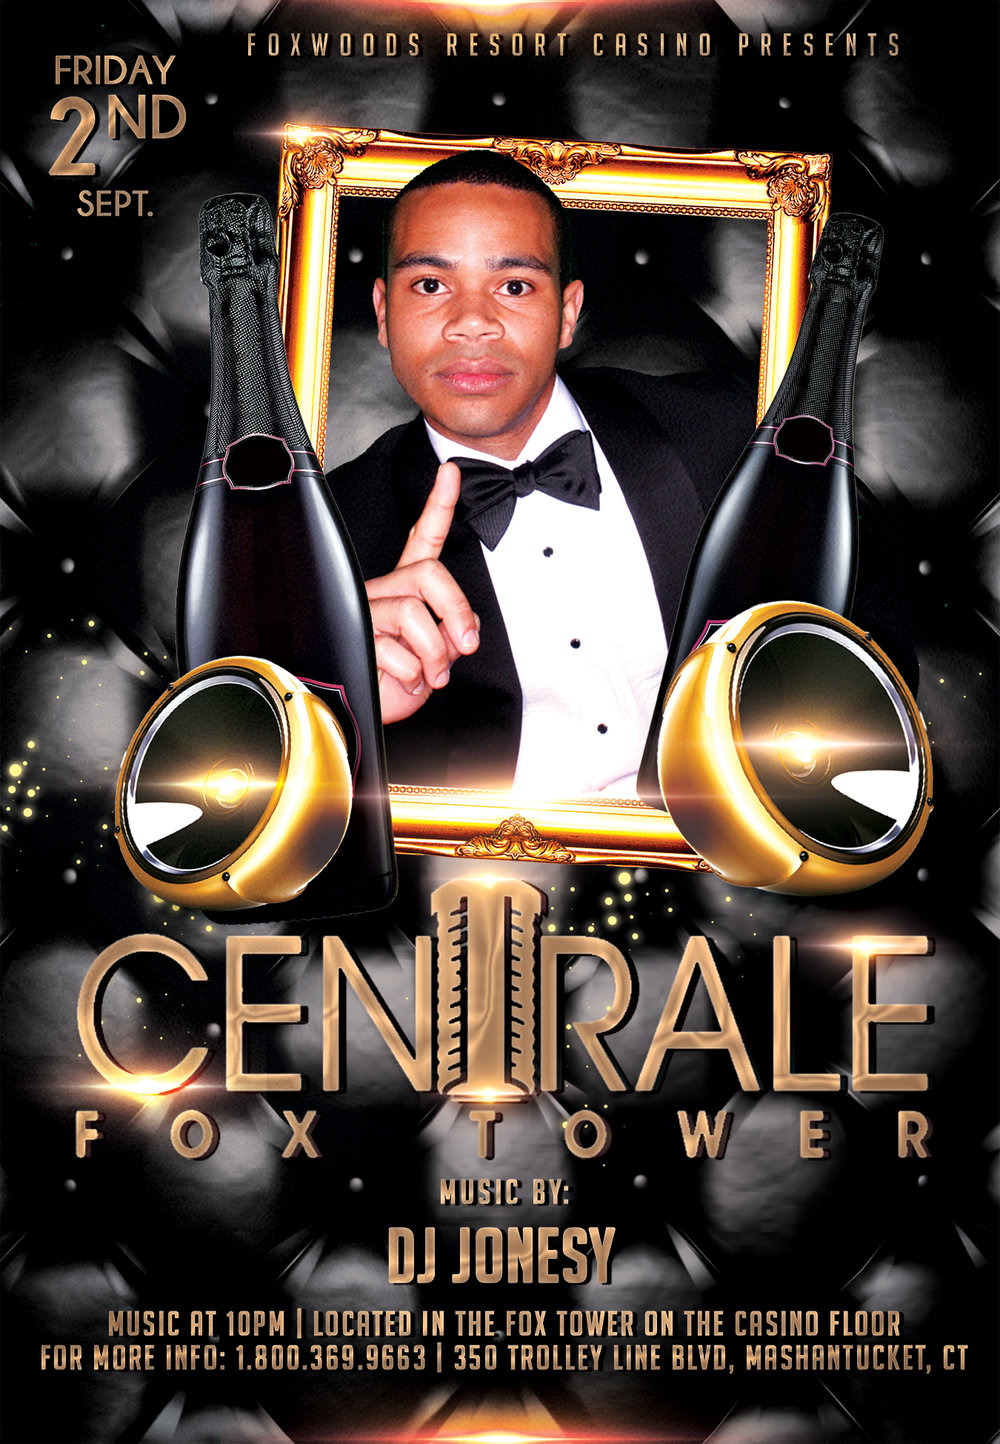 Friday, September 2nd join me Centrale Fox Tower in Foxwoods Resort Casino for music by yours truly 10pm-close.